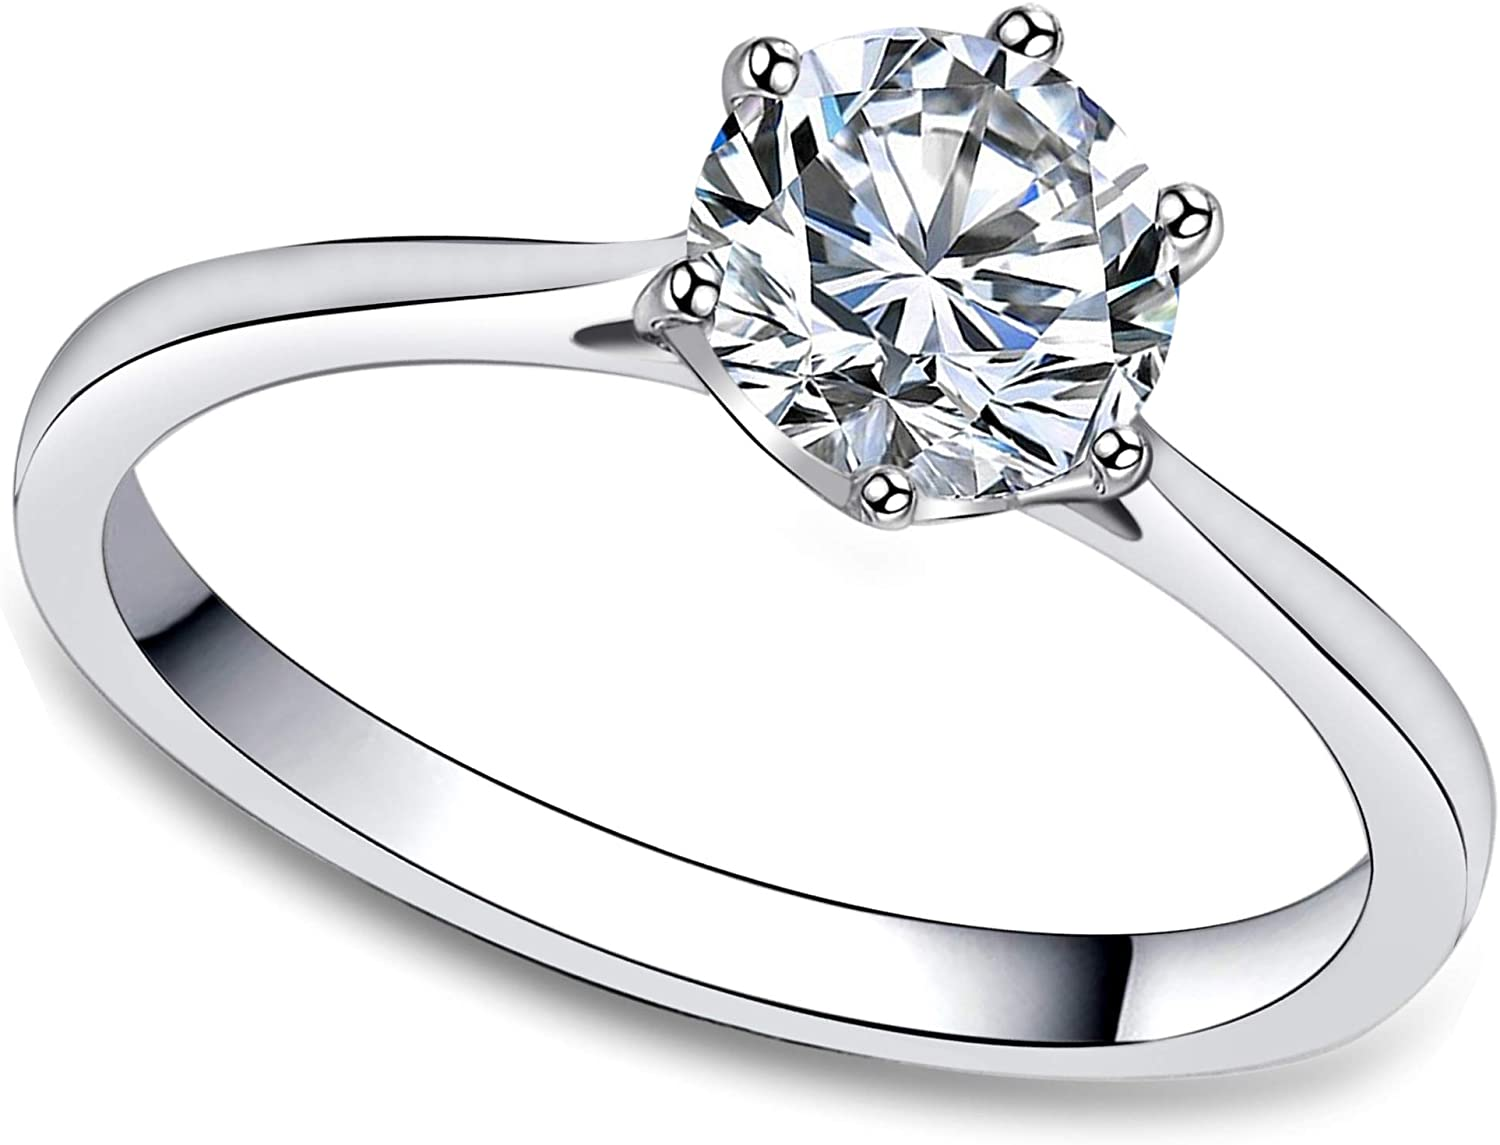 FlameReflection 1.0 1.3 Carat Stainless Max 43% OFF Solitair Minneapolis Mall Steel Classical